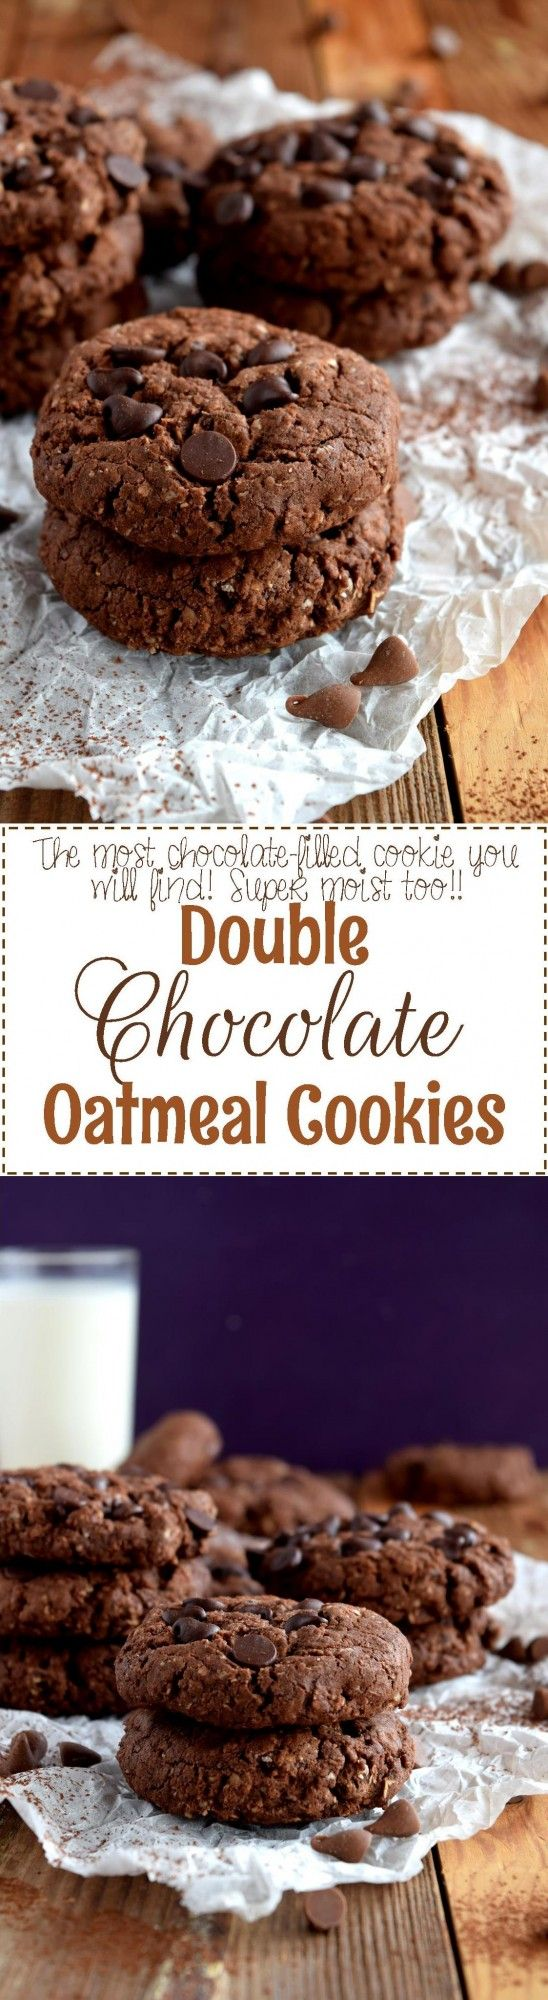 Double Chocolate Oatmeal Cookies - Lord Byron's Kitchen #chocolate #cookies #oatmeal